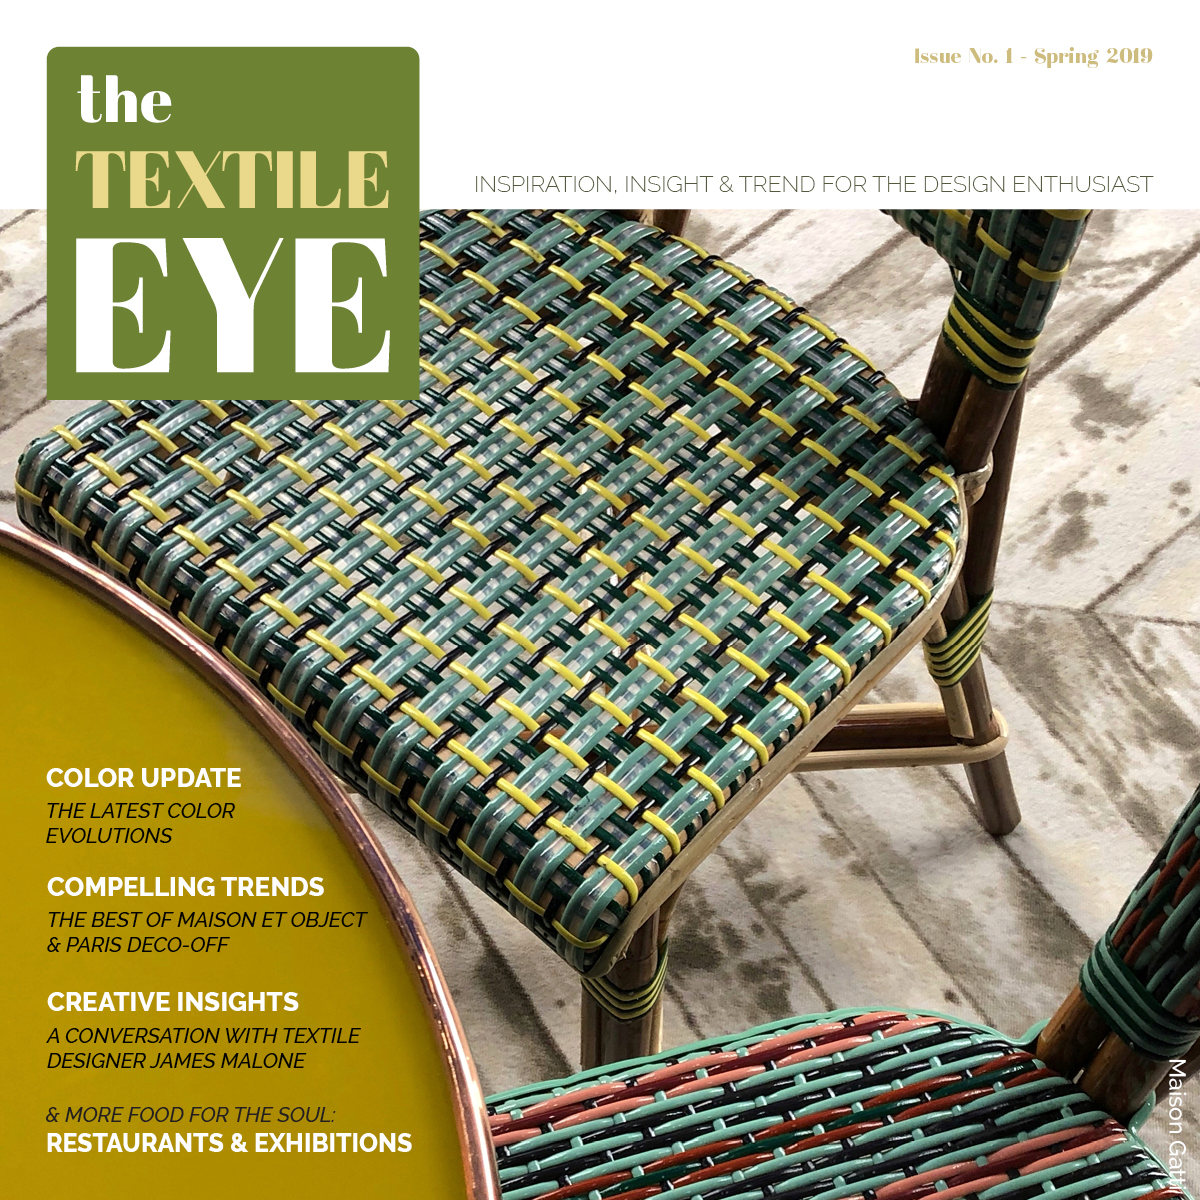 The Textile Eye #1 Spring 19 Cover.jpg